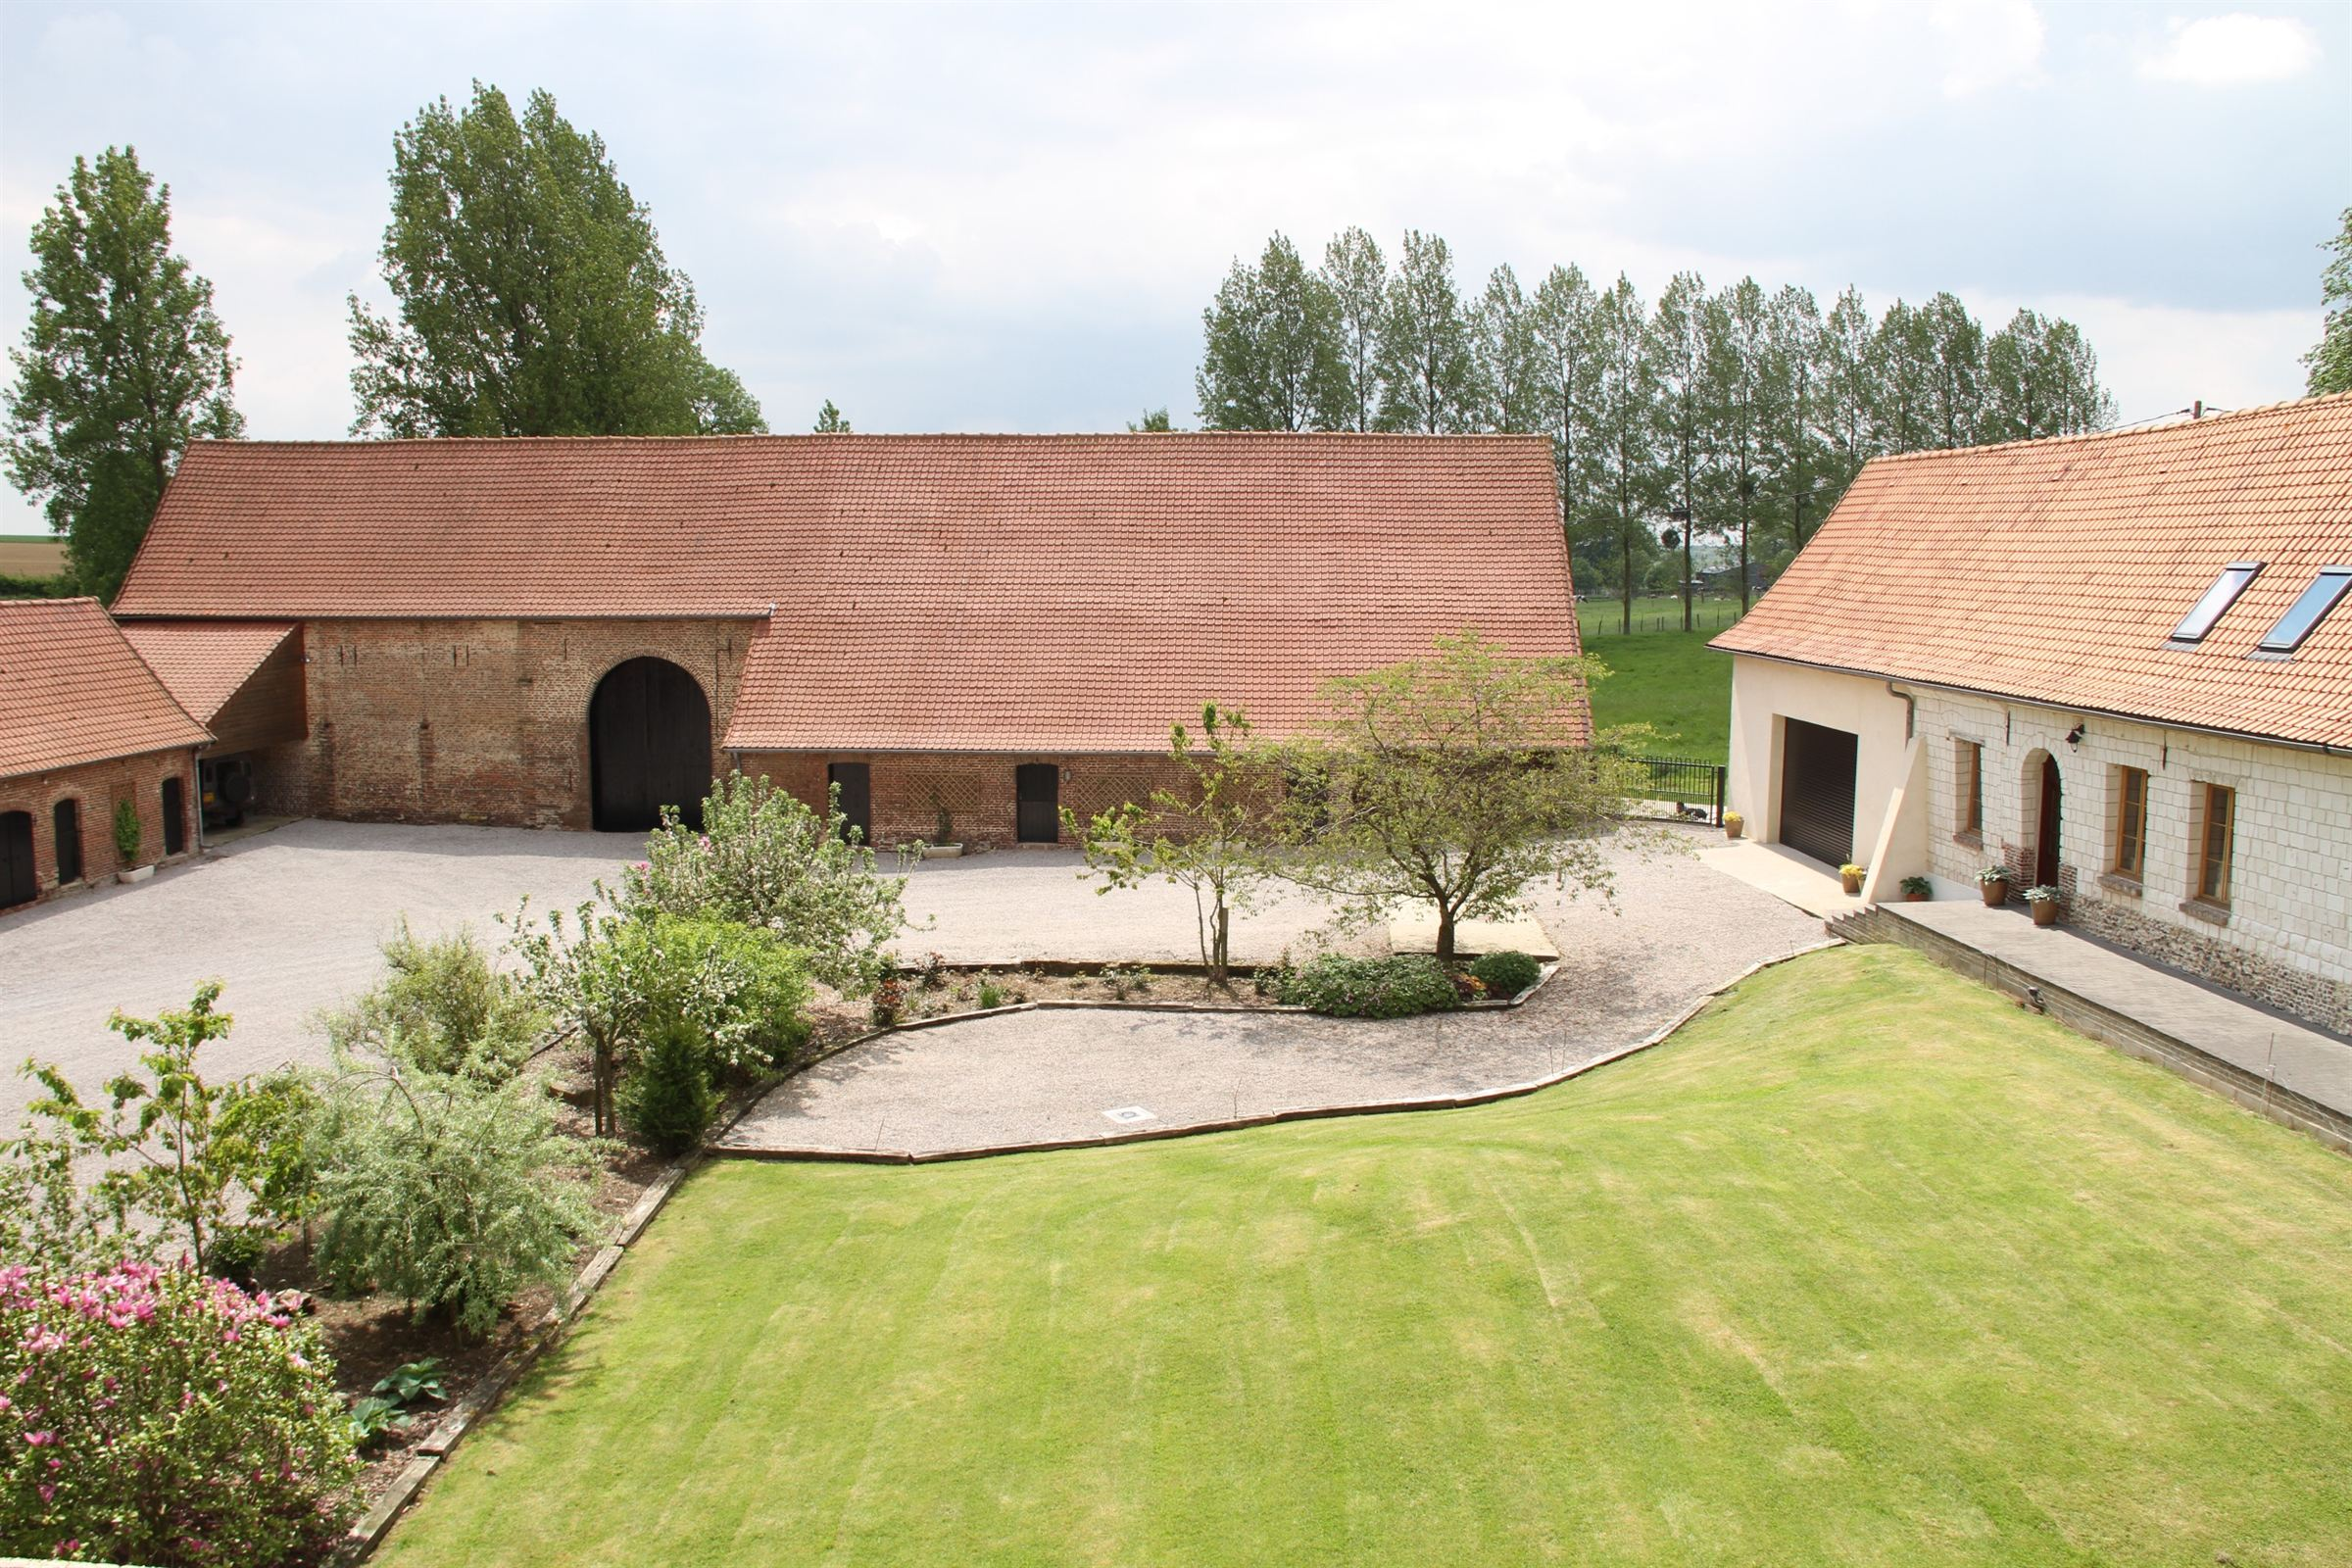 Property For Sale at Hesdin Country, Farmhouse restored on 2Ha.